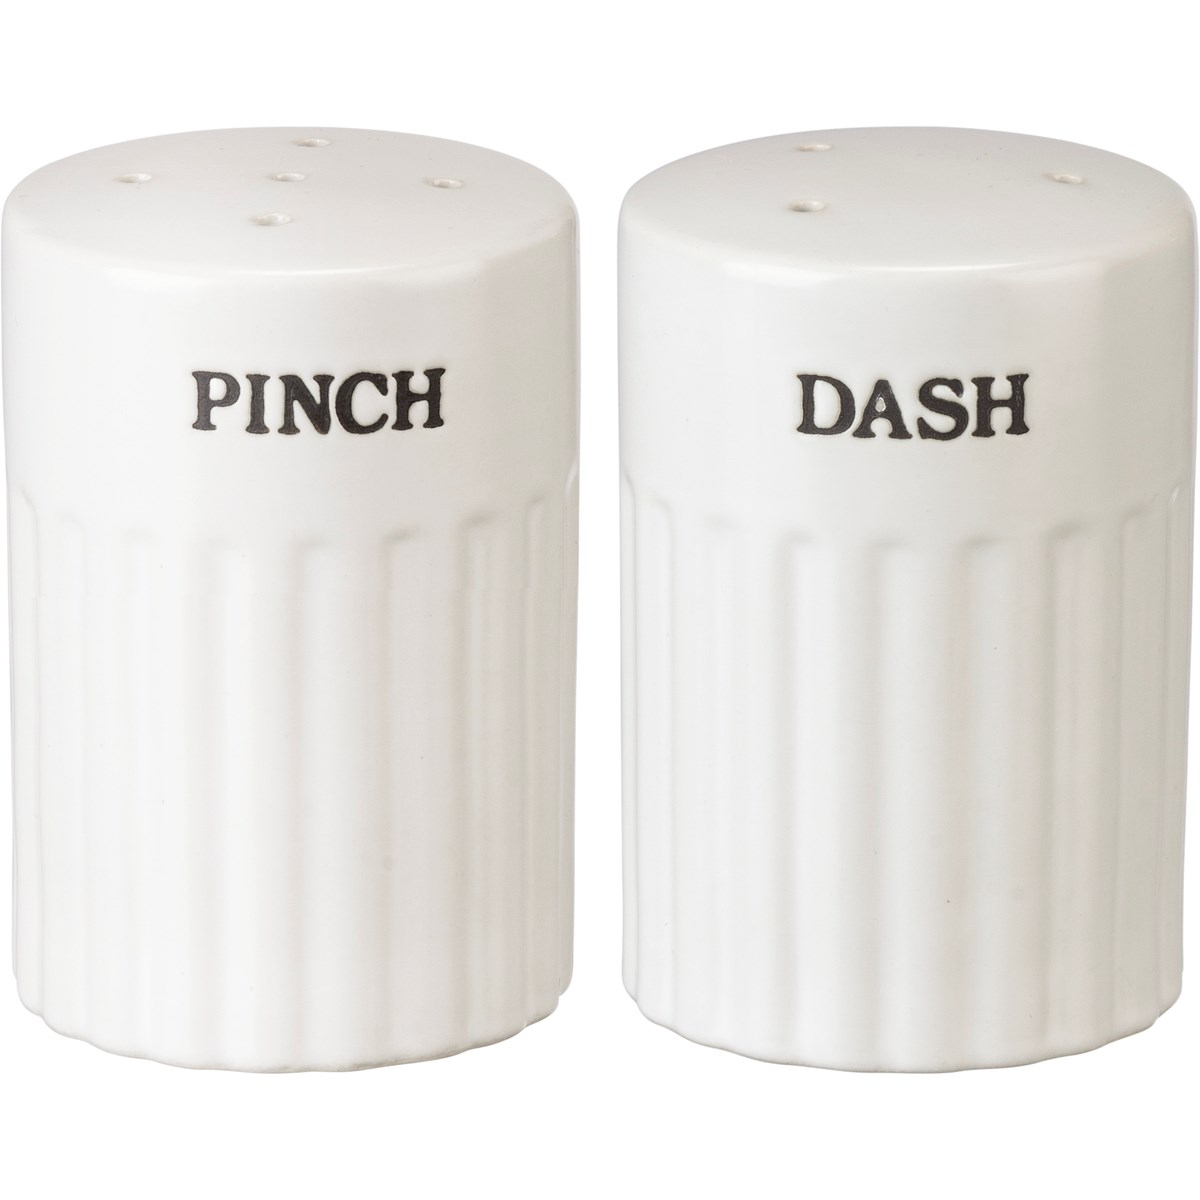 "Salt & Pepper Set - Pinch Dash - 2.50"" Diameter x 3.50"" - Stoneware, Plastic"